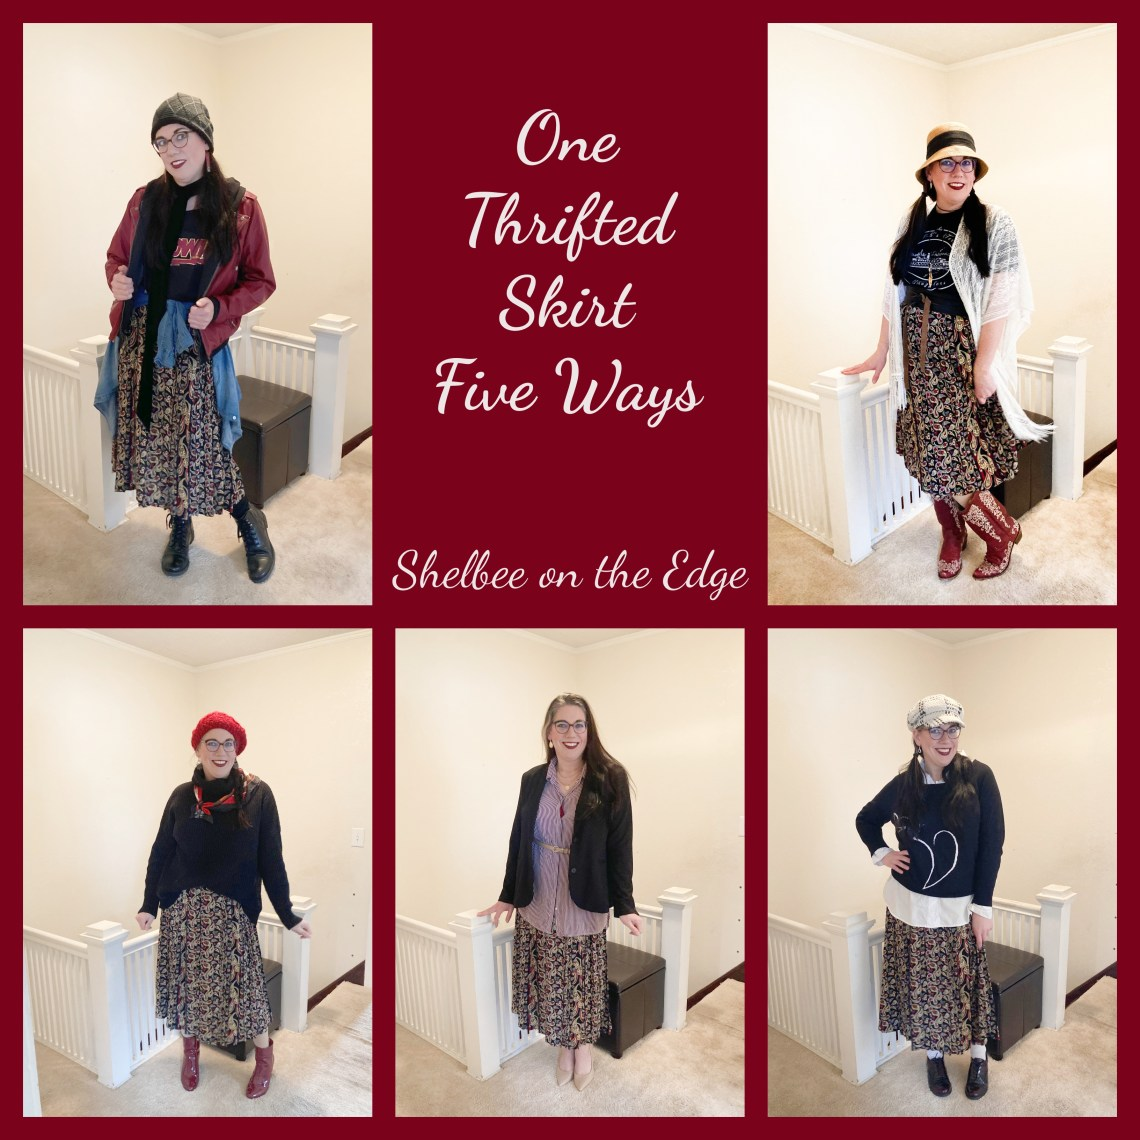 paisley skirt styled 5 different ways